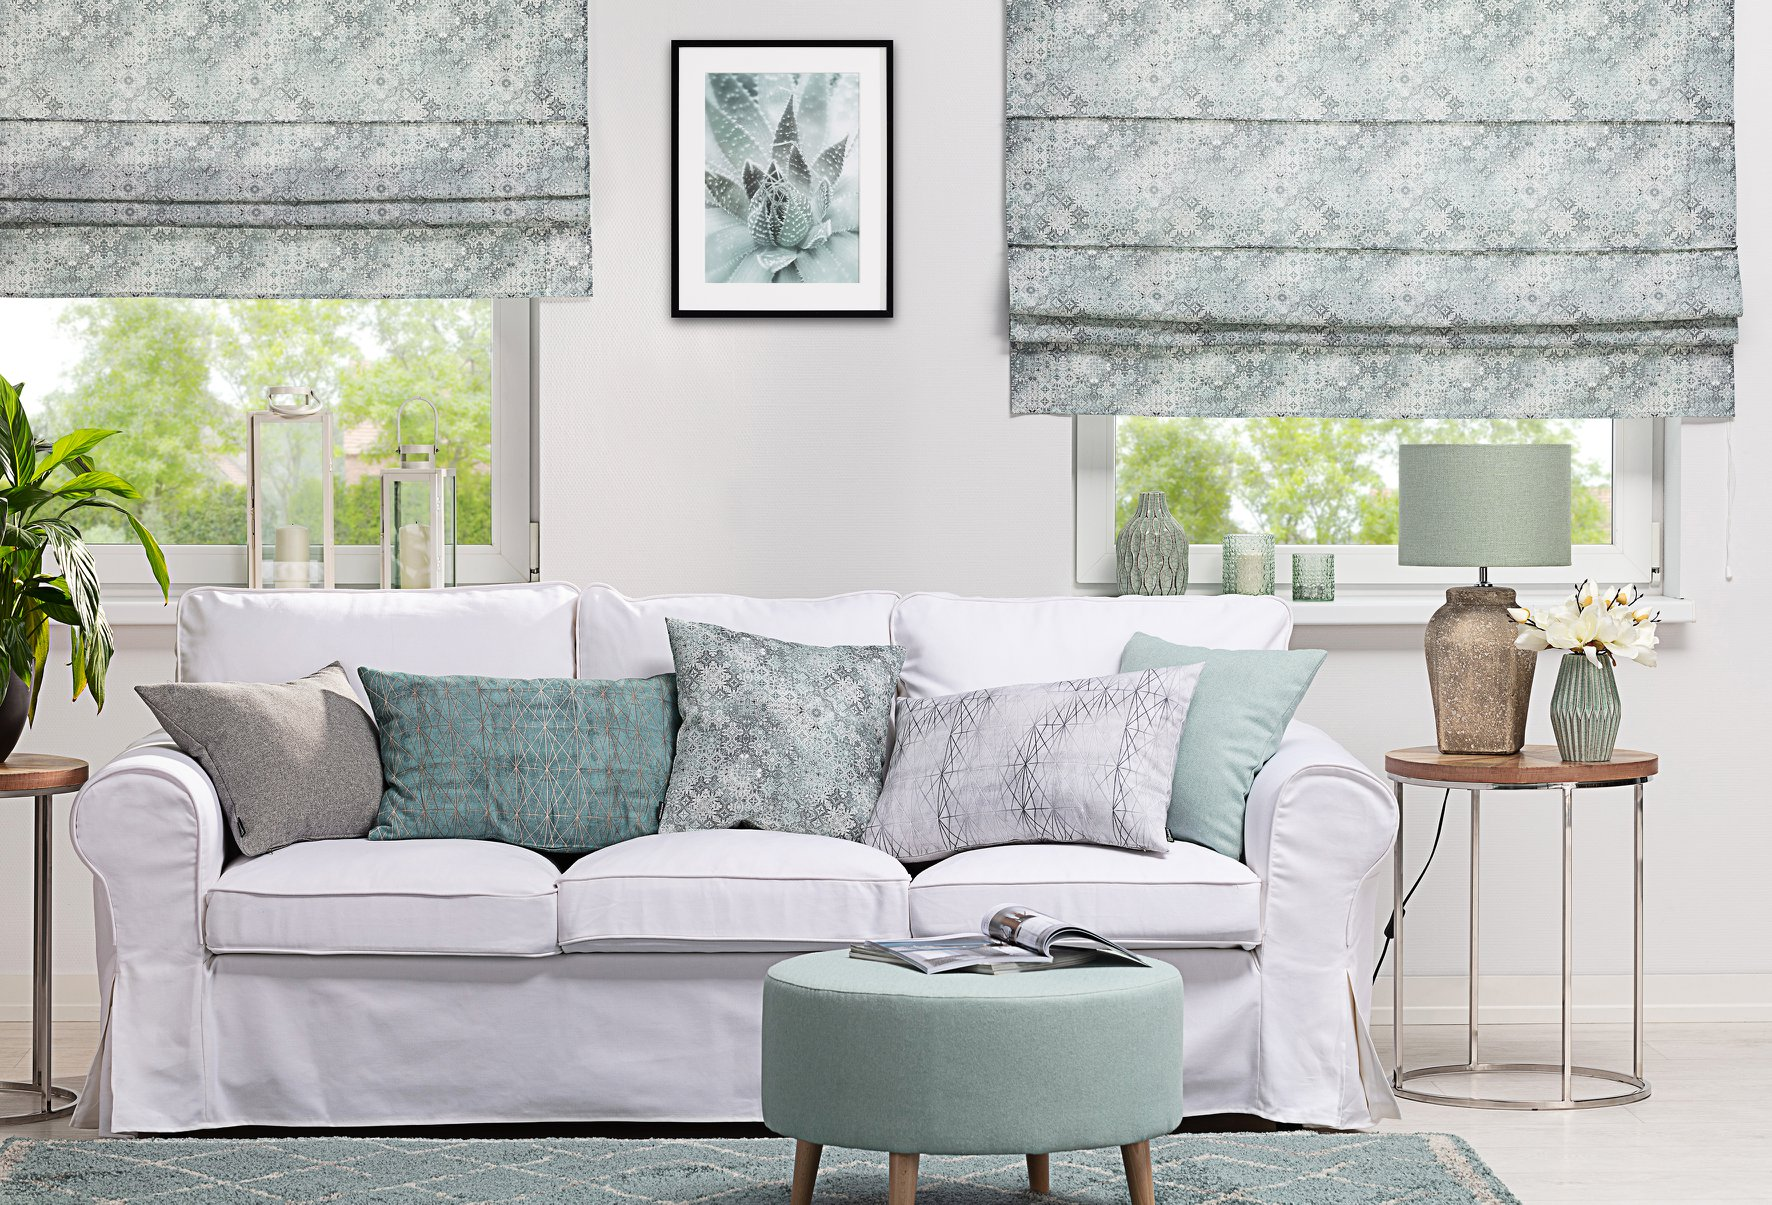 free shipping with ikea soft covers - A wide range of over 100 fabric choices in Dekoria's machine washable (kids & pet friendly) sofa and chair covers with unique 2 years warranty. Dekoria delivery is quick too and now free.